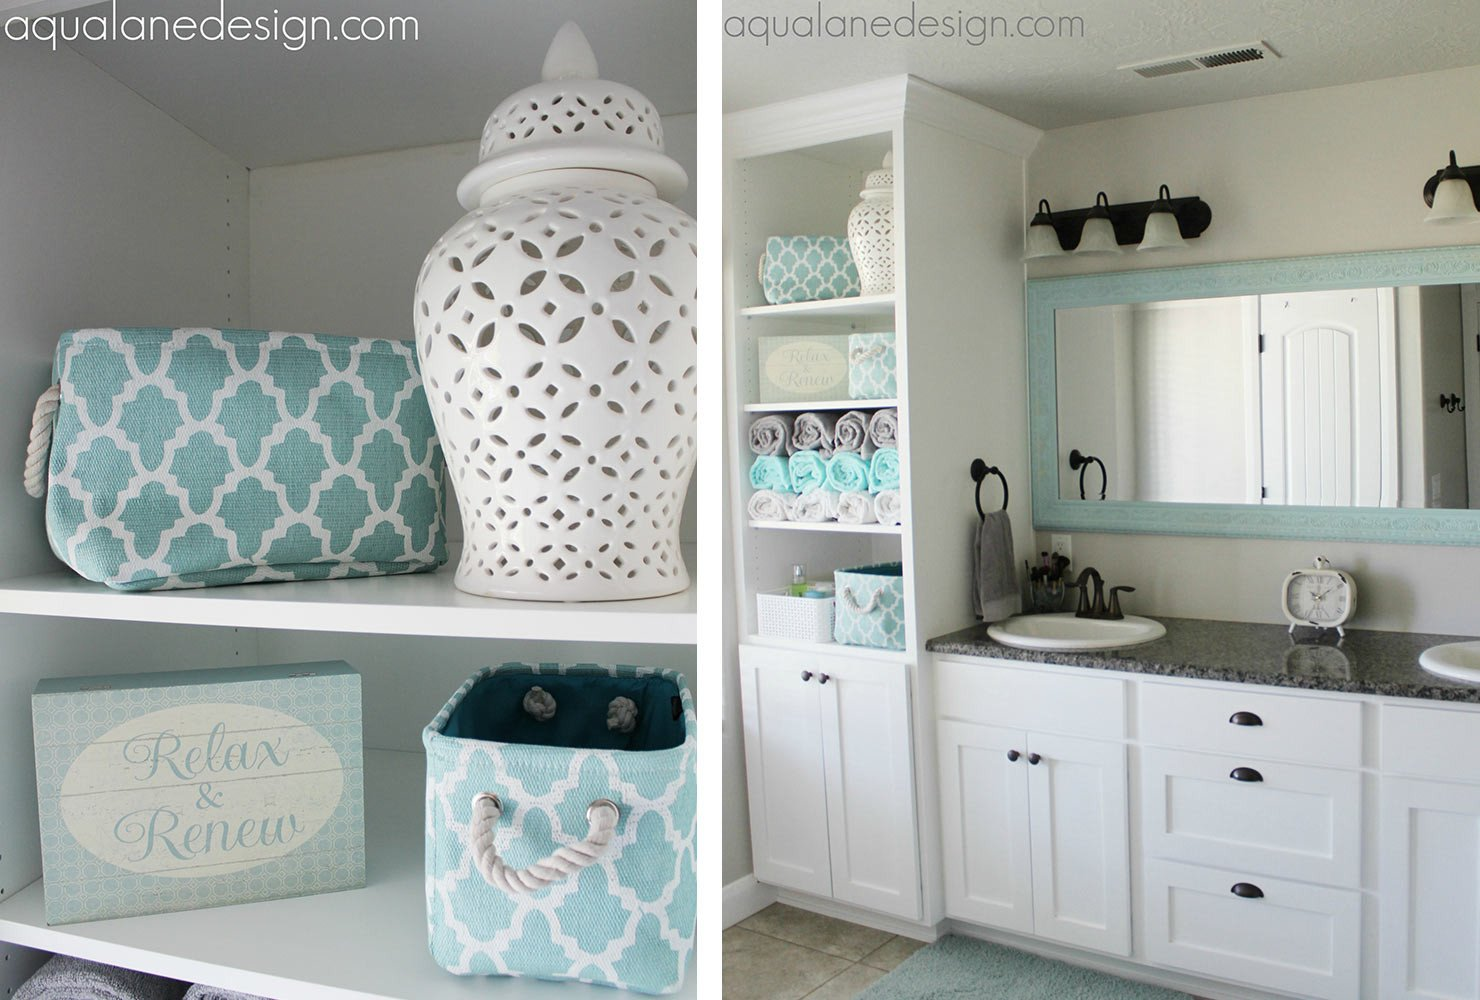 76 Ways To Decorate A Small Bathroom